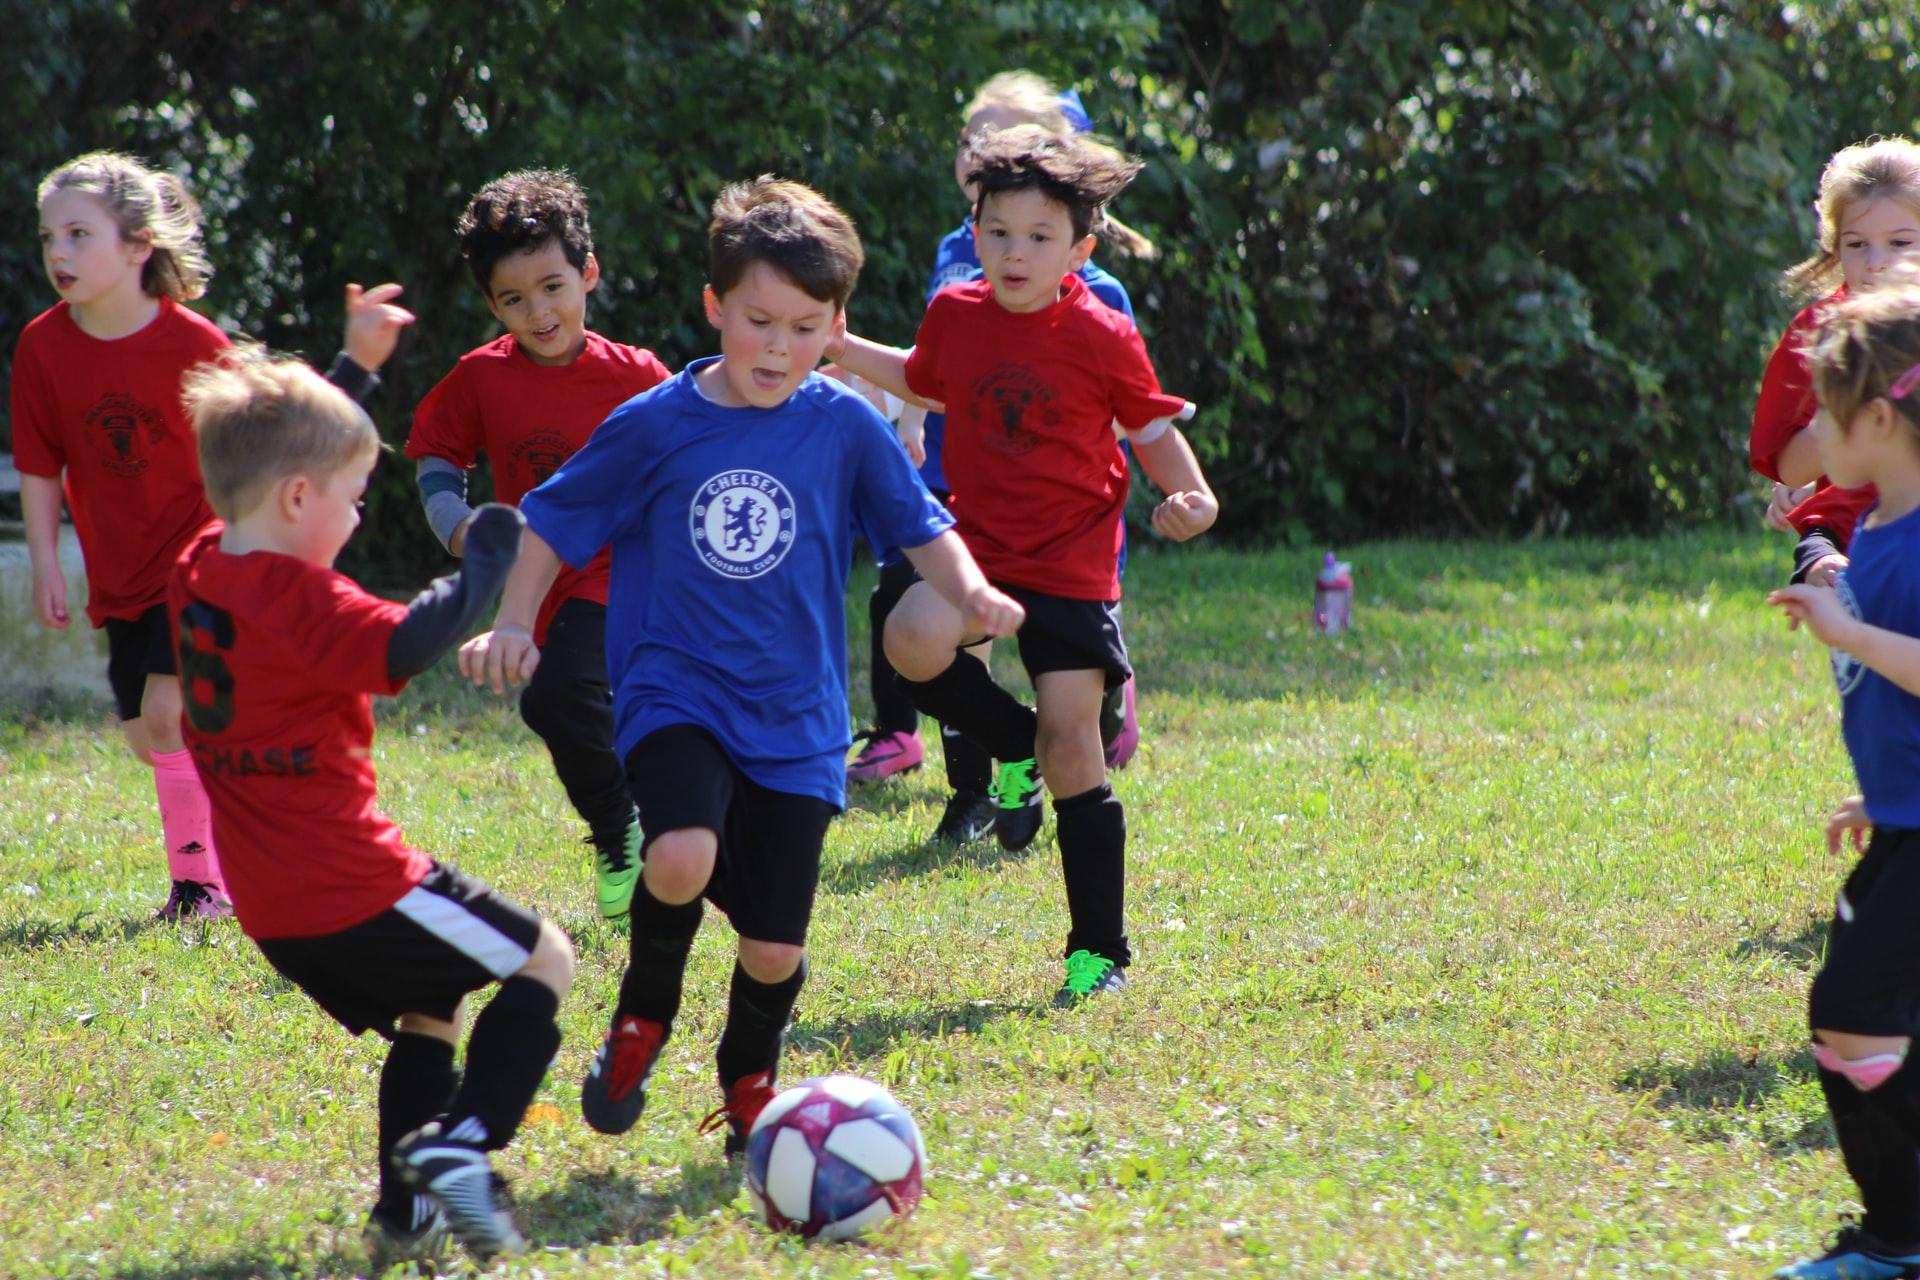 A group of kids playing football  Description automatically generated with medium confidence